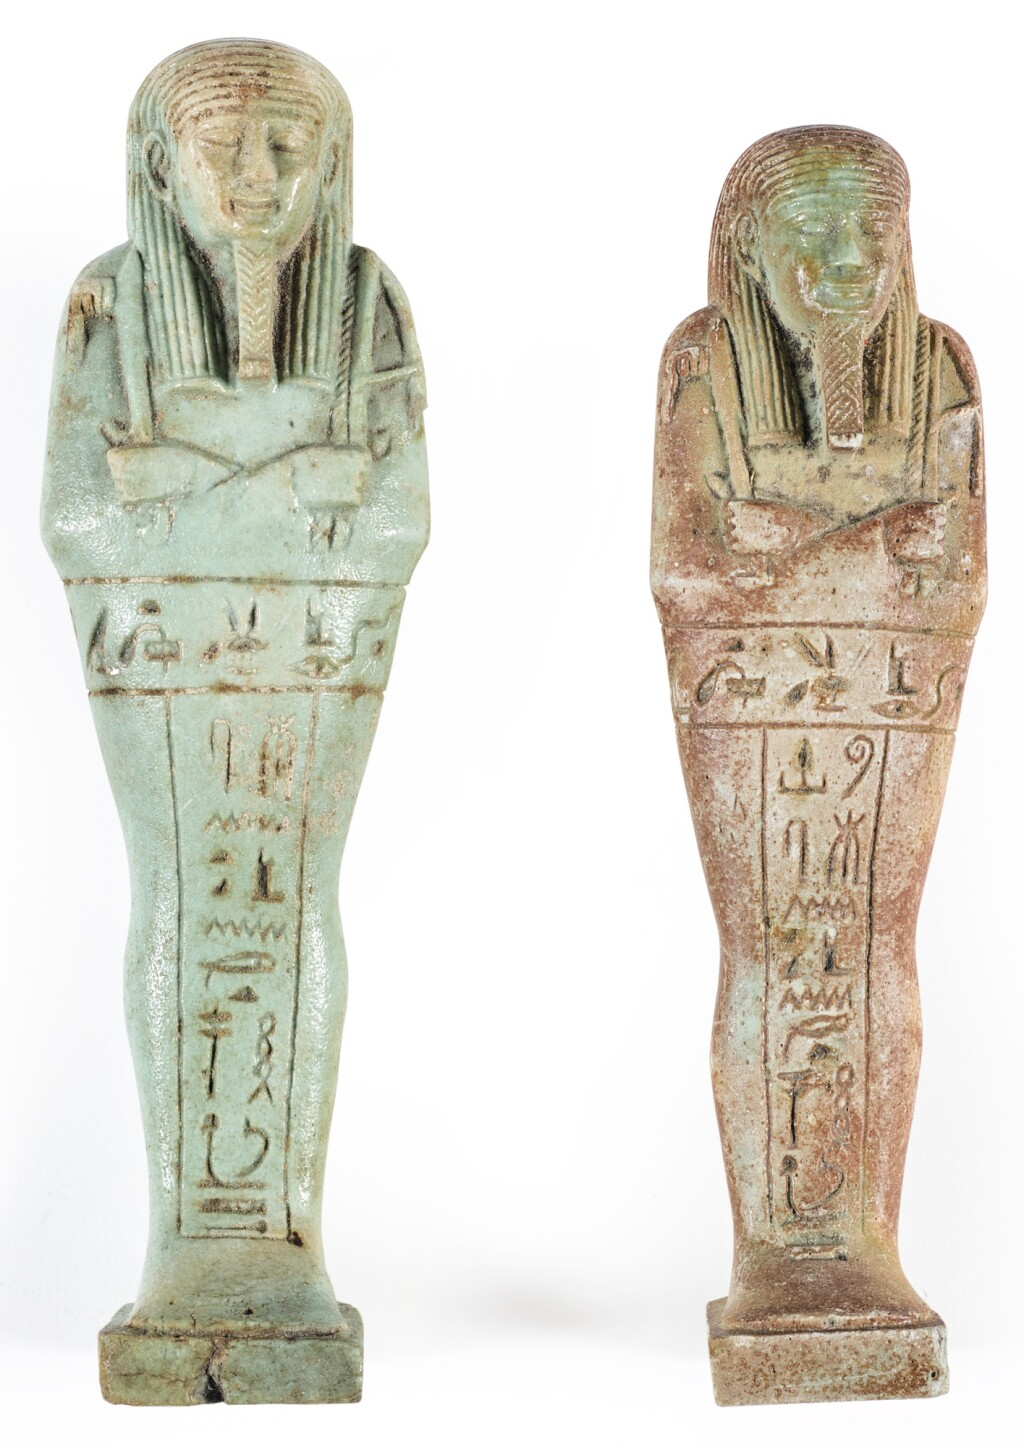 TWO EGYPTIAN GREEN-GLAZED USHABTIS, 26TH DYNASTY, CIRCA 664-525 B.C.